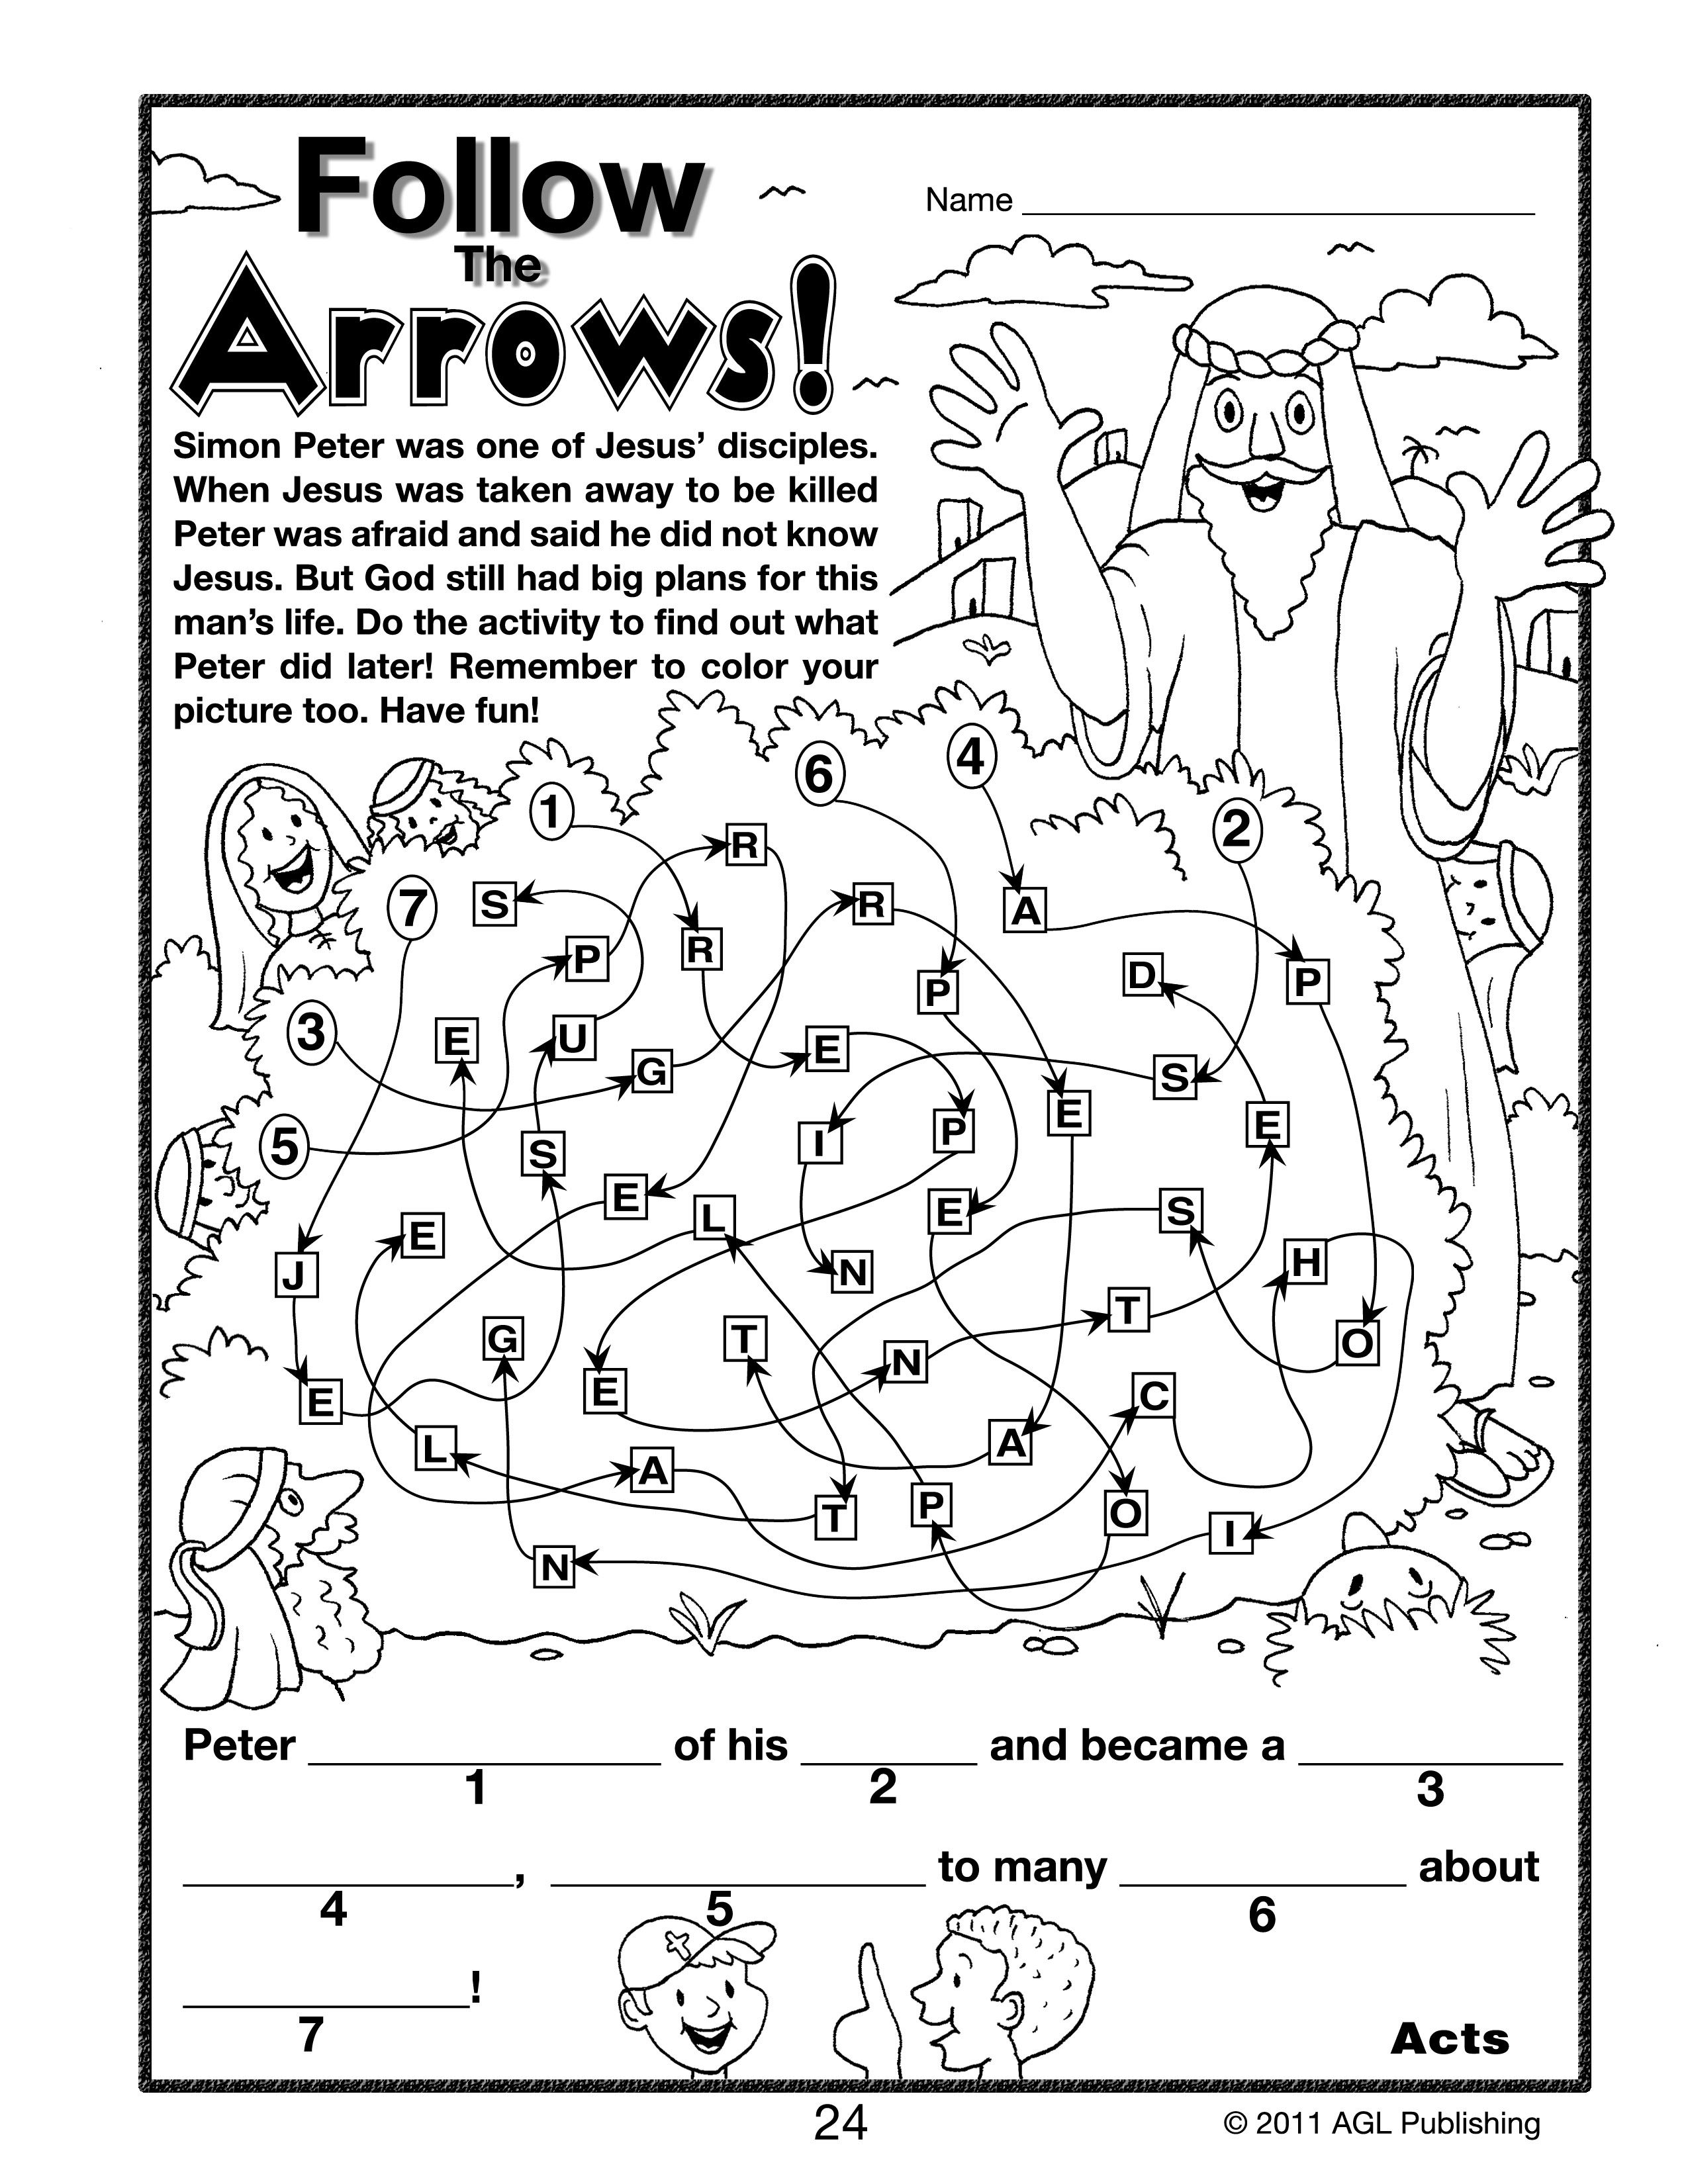 Childrens coloring sheet of saul and ananias - Nt 3rd 4thpg24